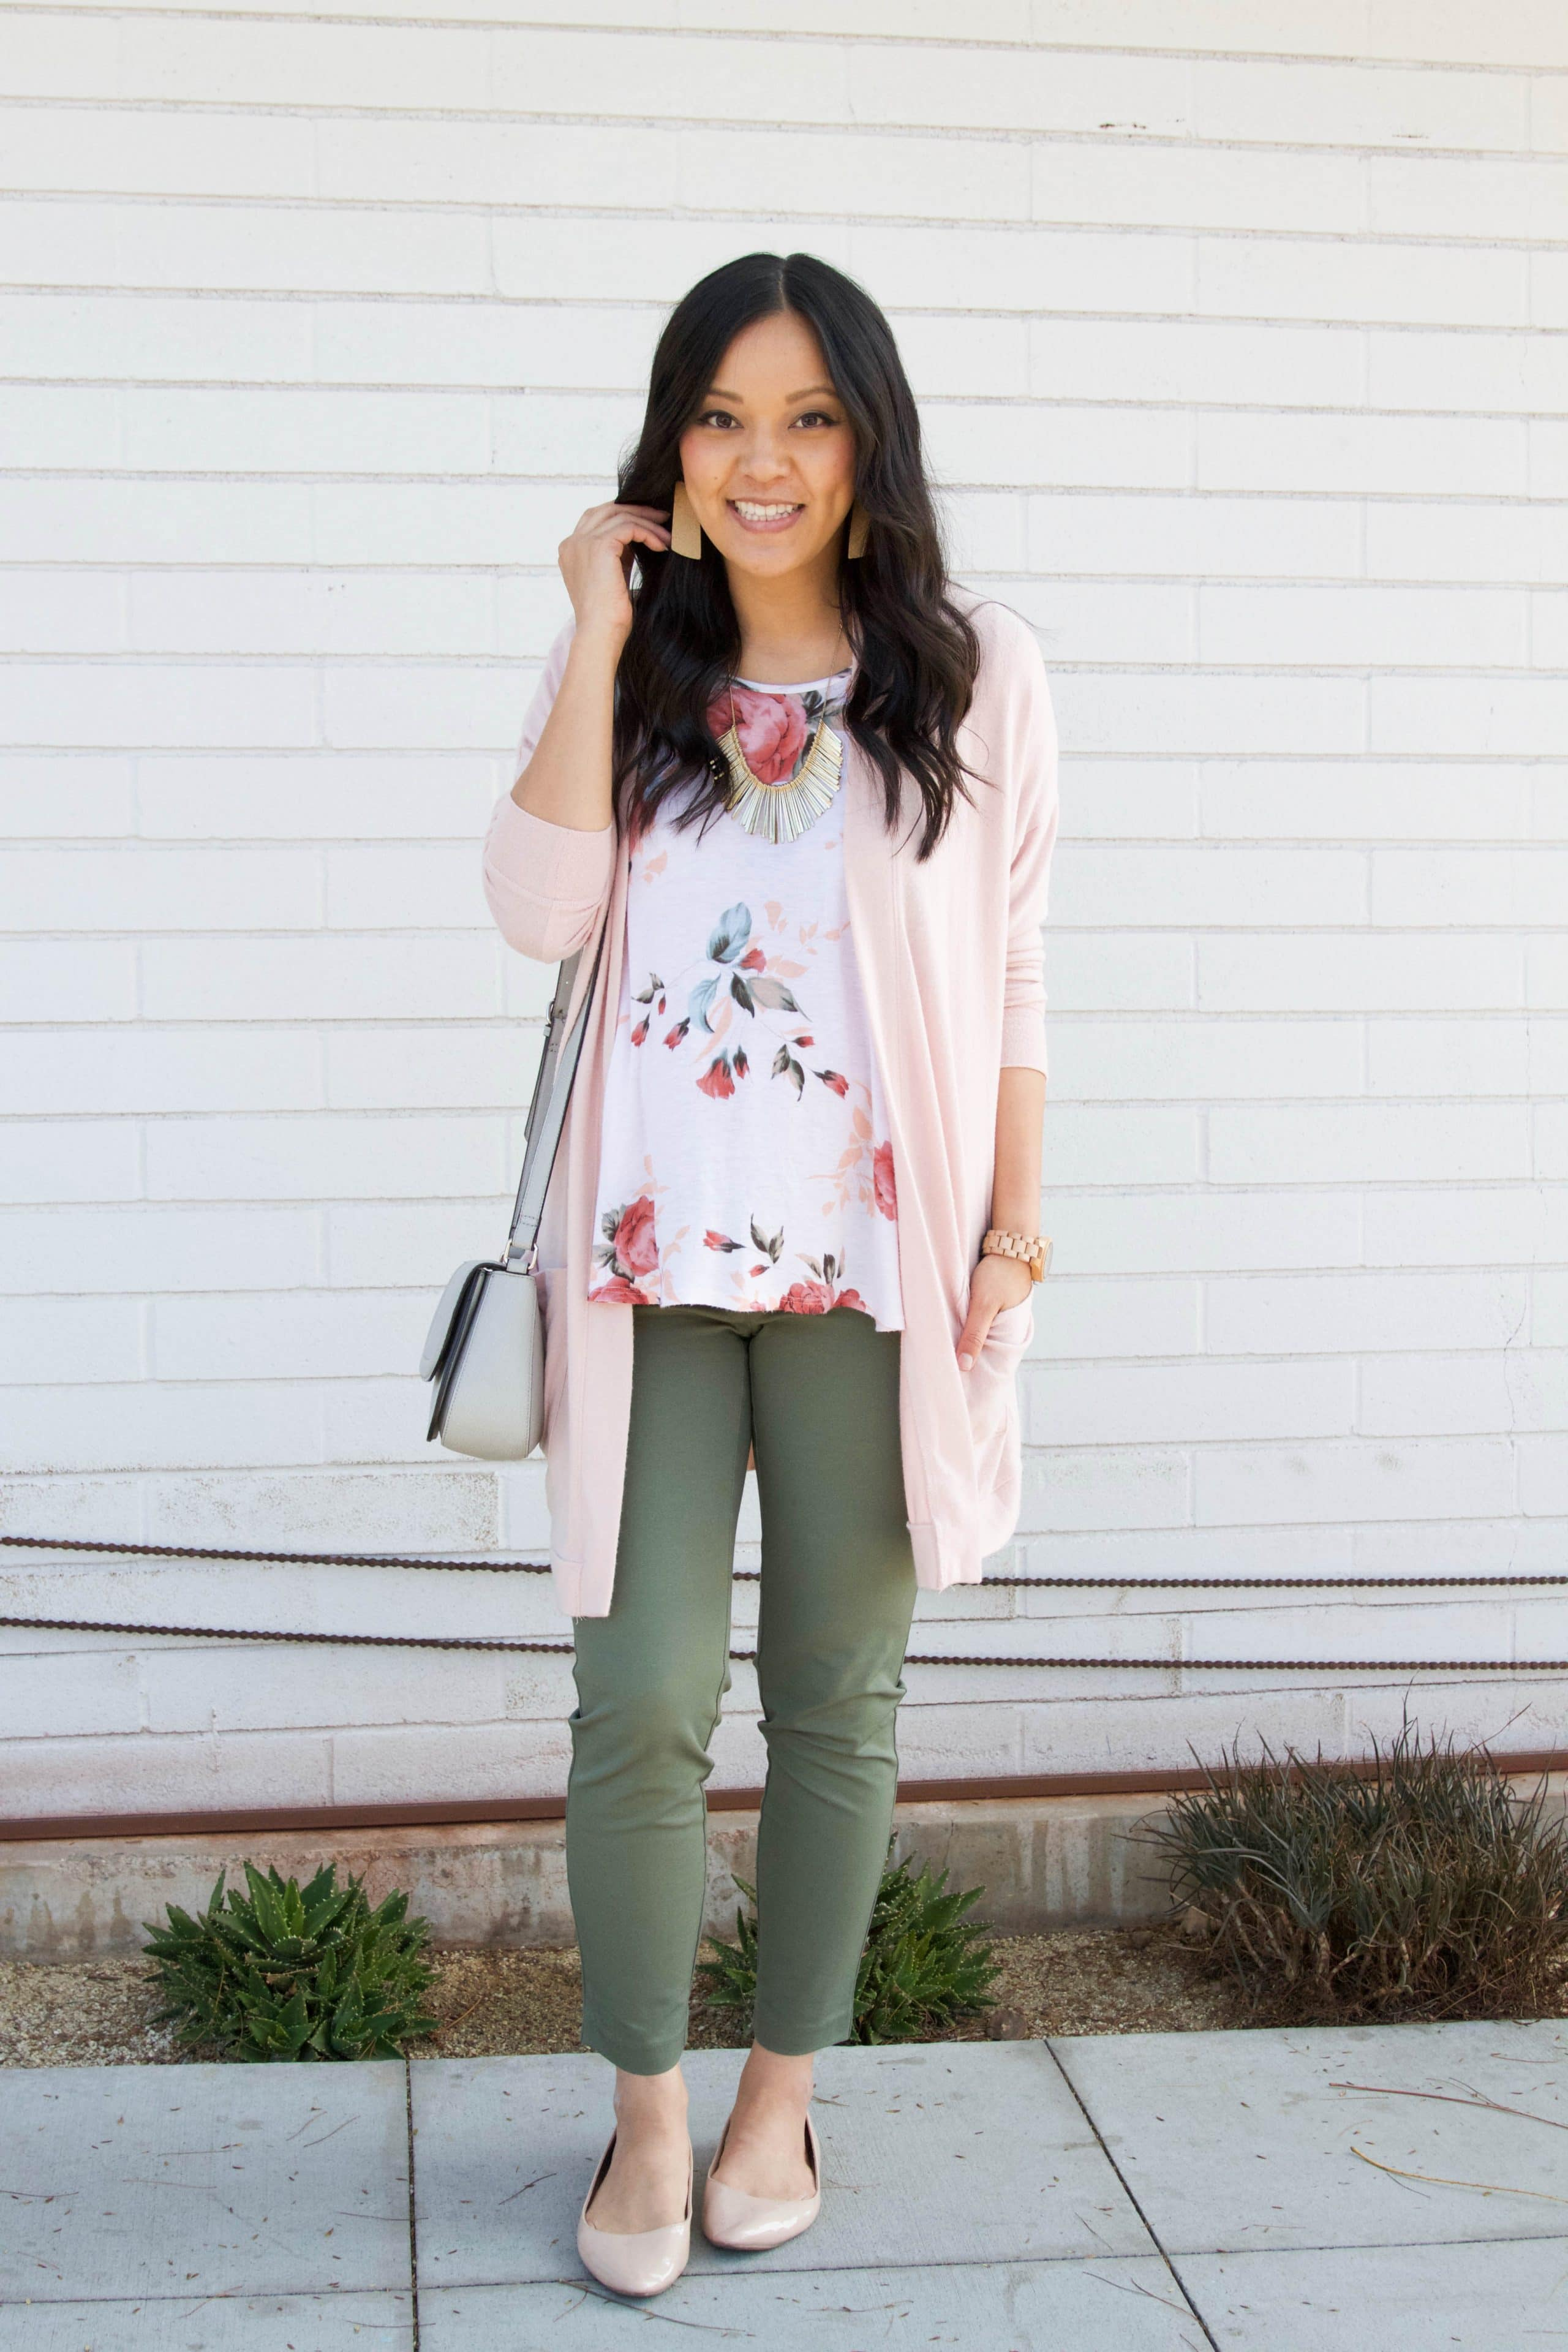 Blush Cardigan + Olive Pants + Nude Flats + Floral Top + Statement Earrings